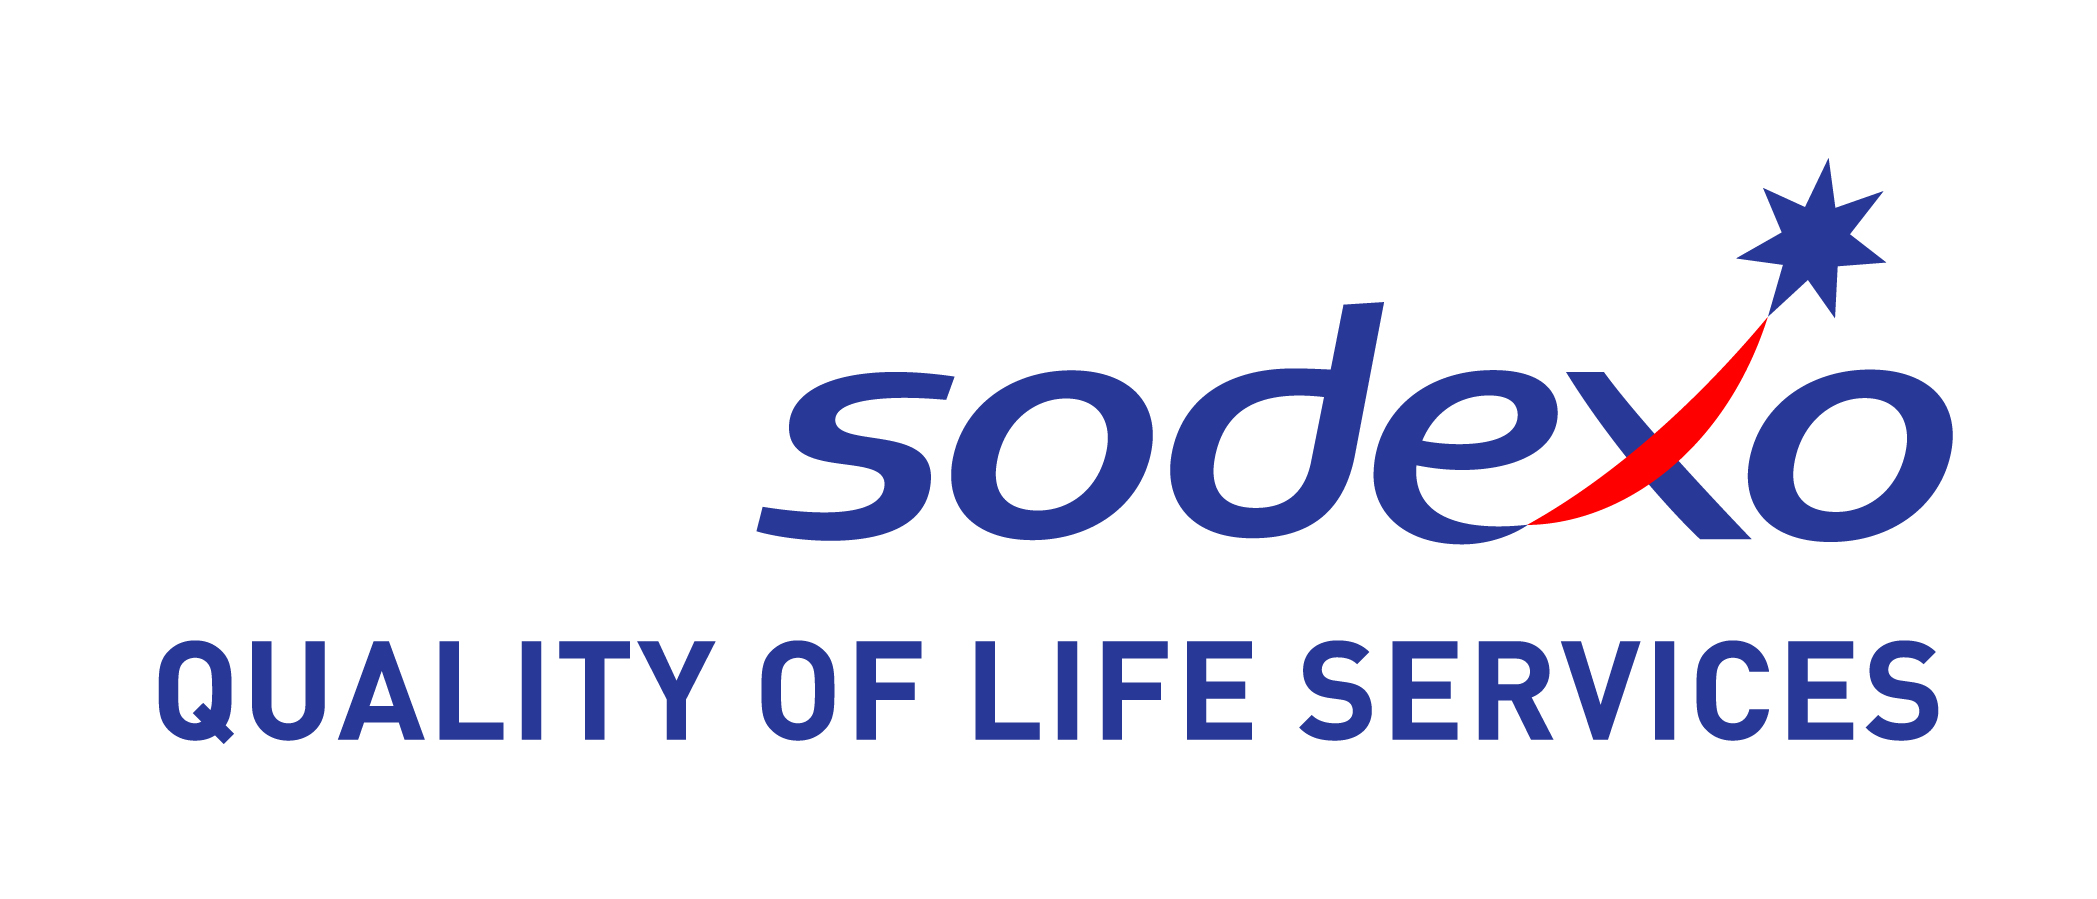 Go to sodexo's site